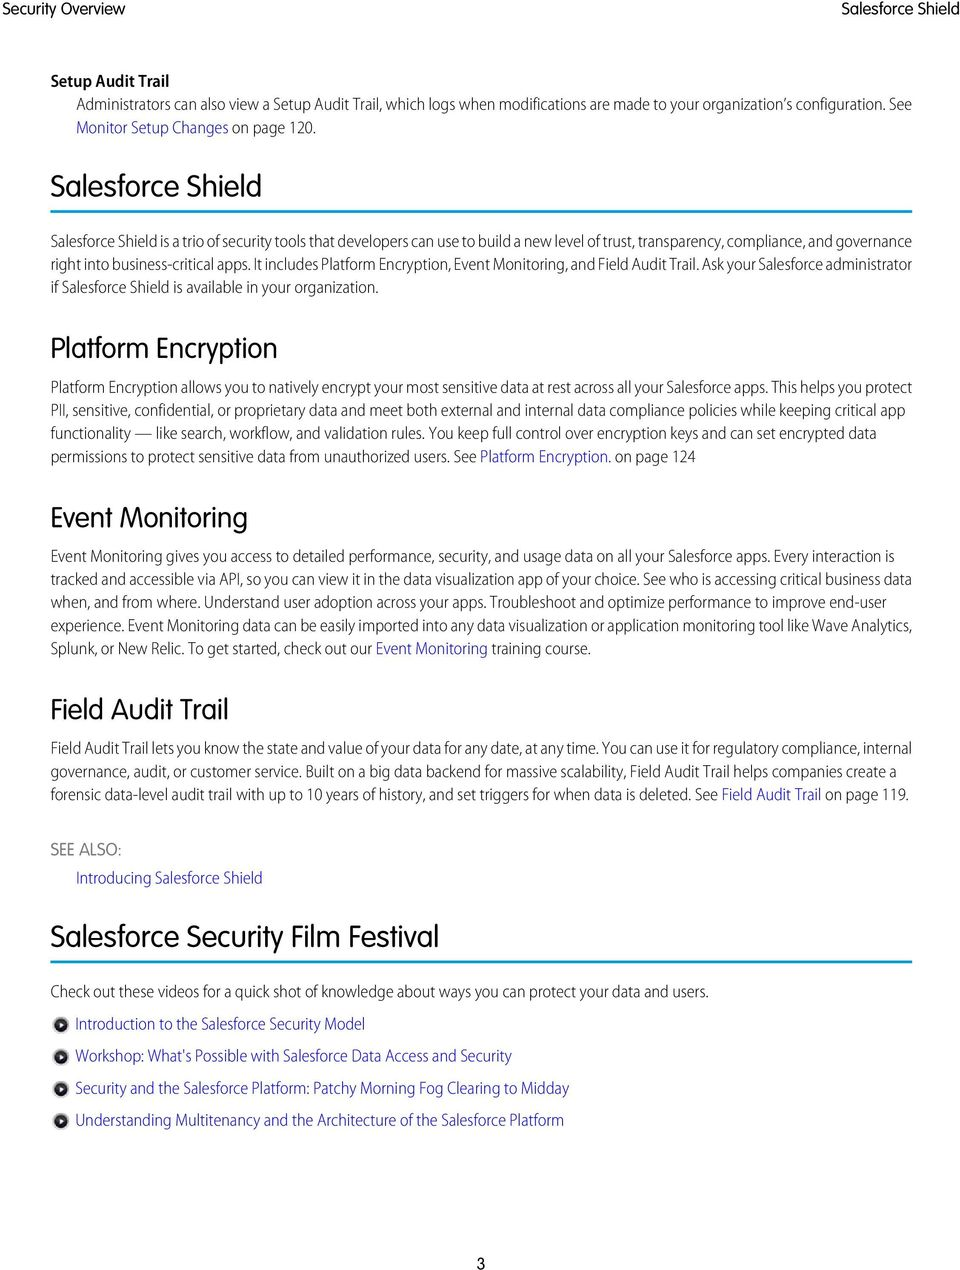 Security Implementation Guide - PDF